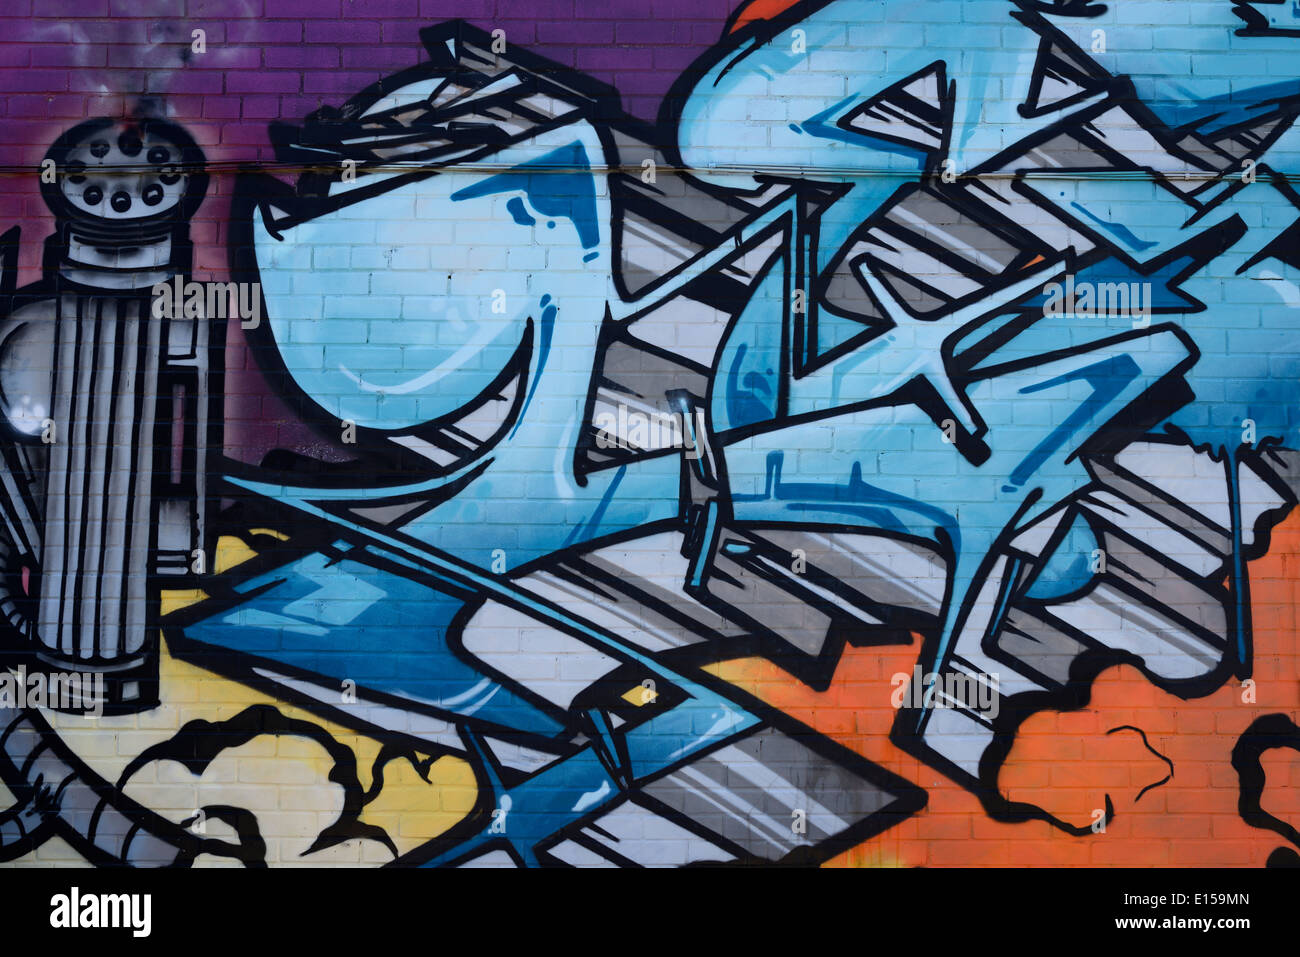 Futuristic Spray Paint Graffiti Tag With Machine Gun On Brick Wall In Stock Photo Royalty Free